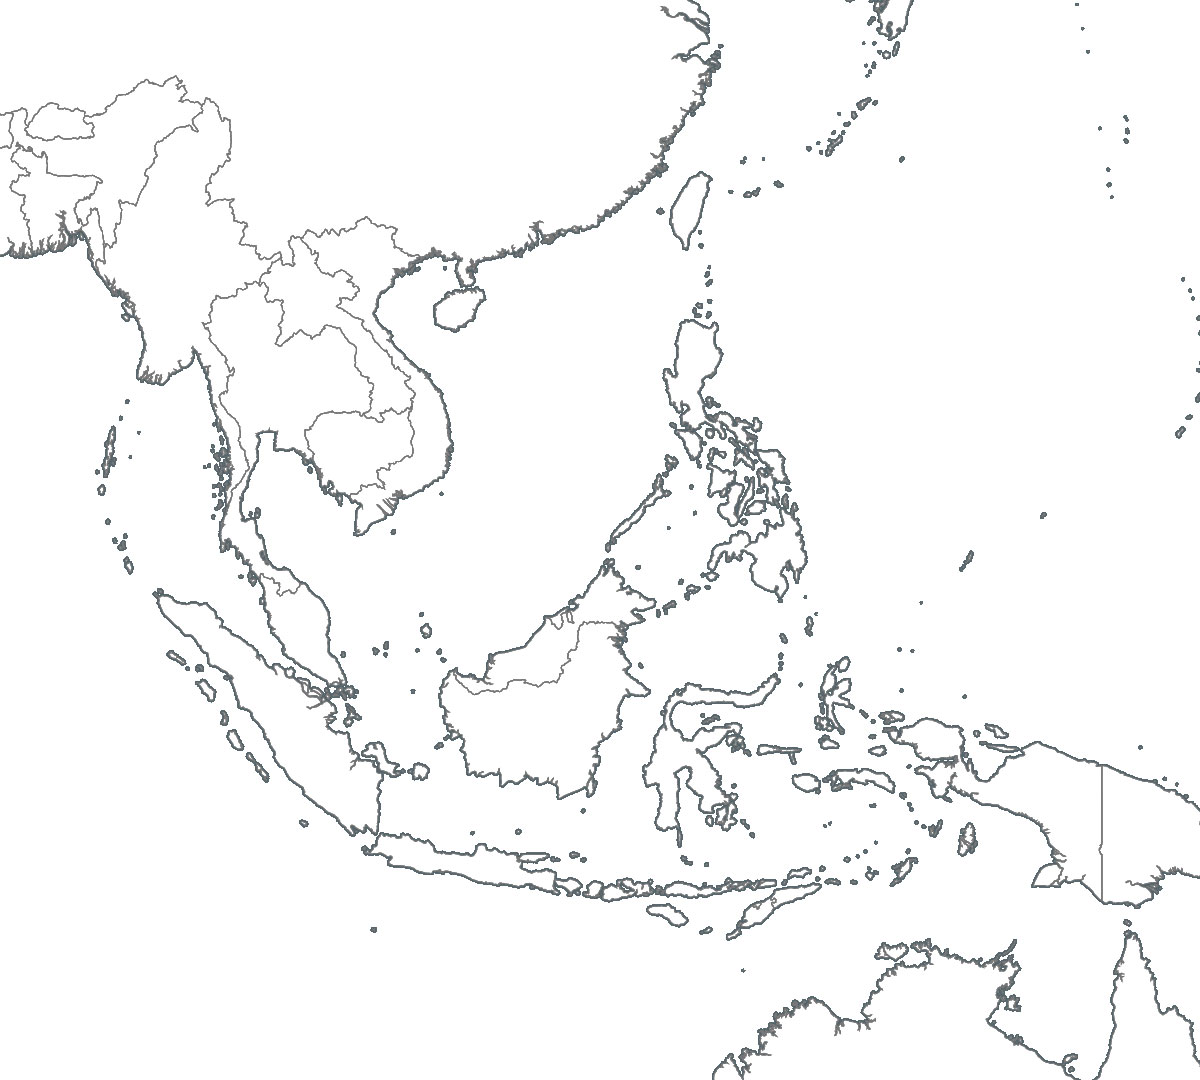 South East Asia Political Map Blank